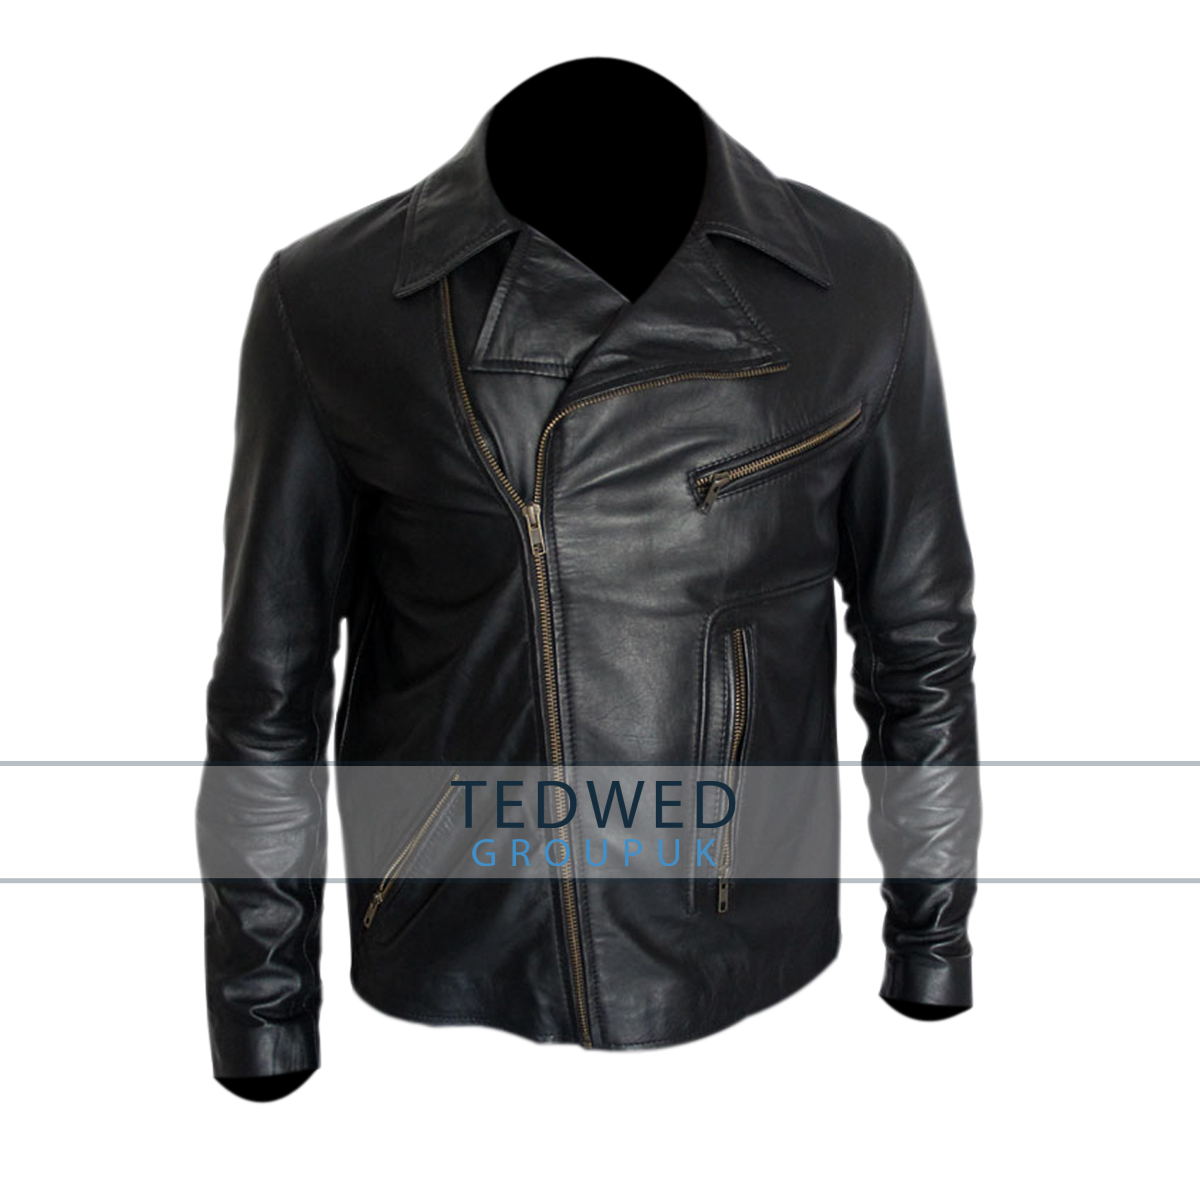 2014 New James Franco Jacket Tedwed